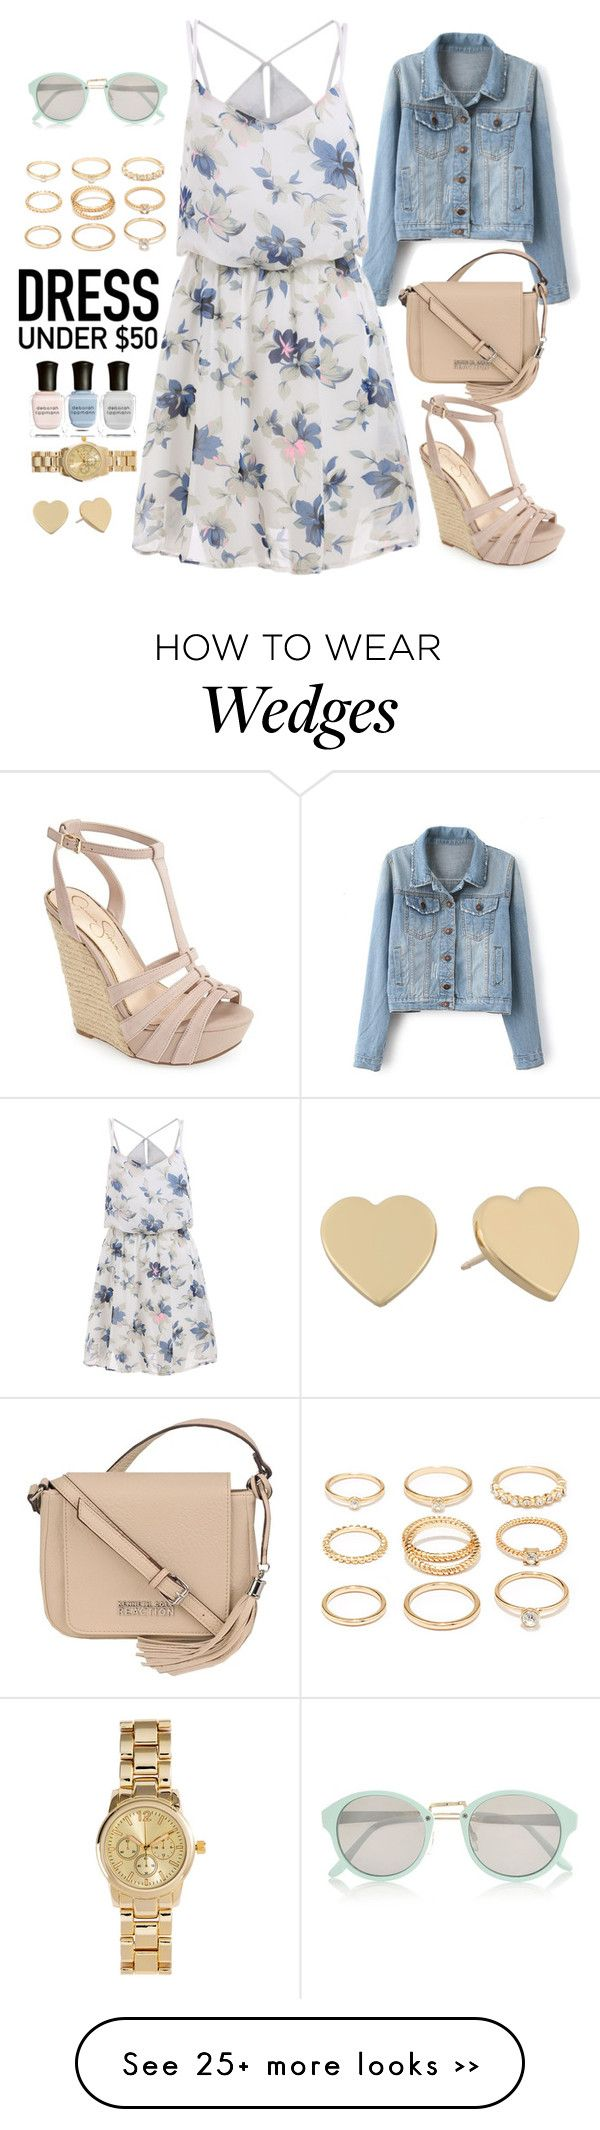 """Dress under $50"" by samang on Polyvore"